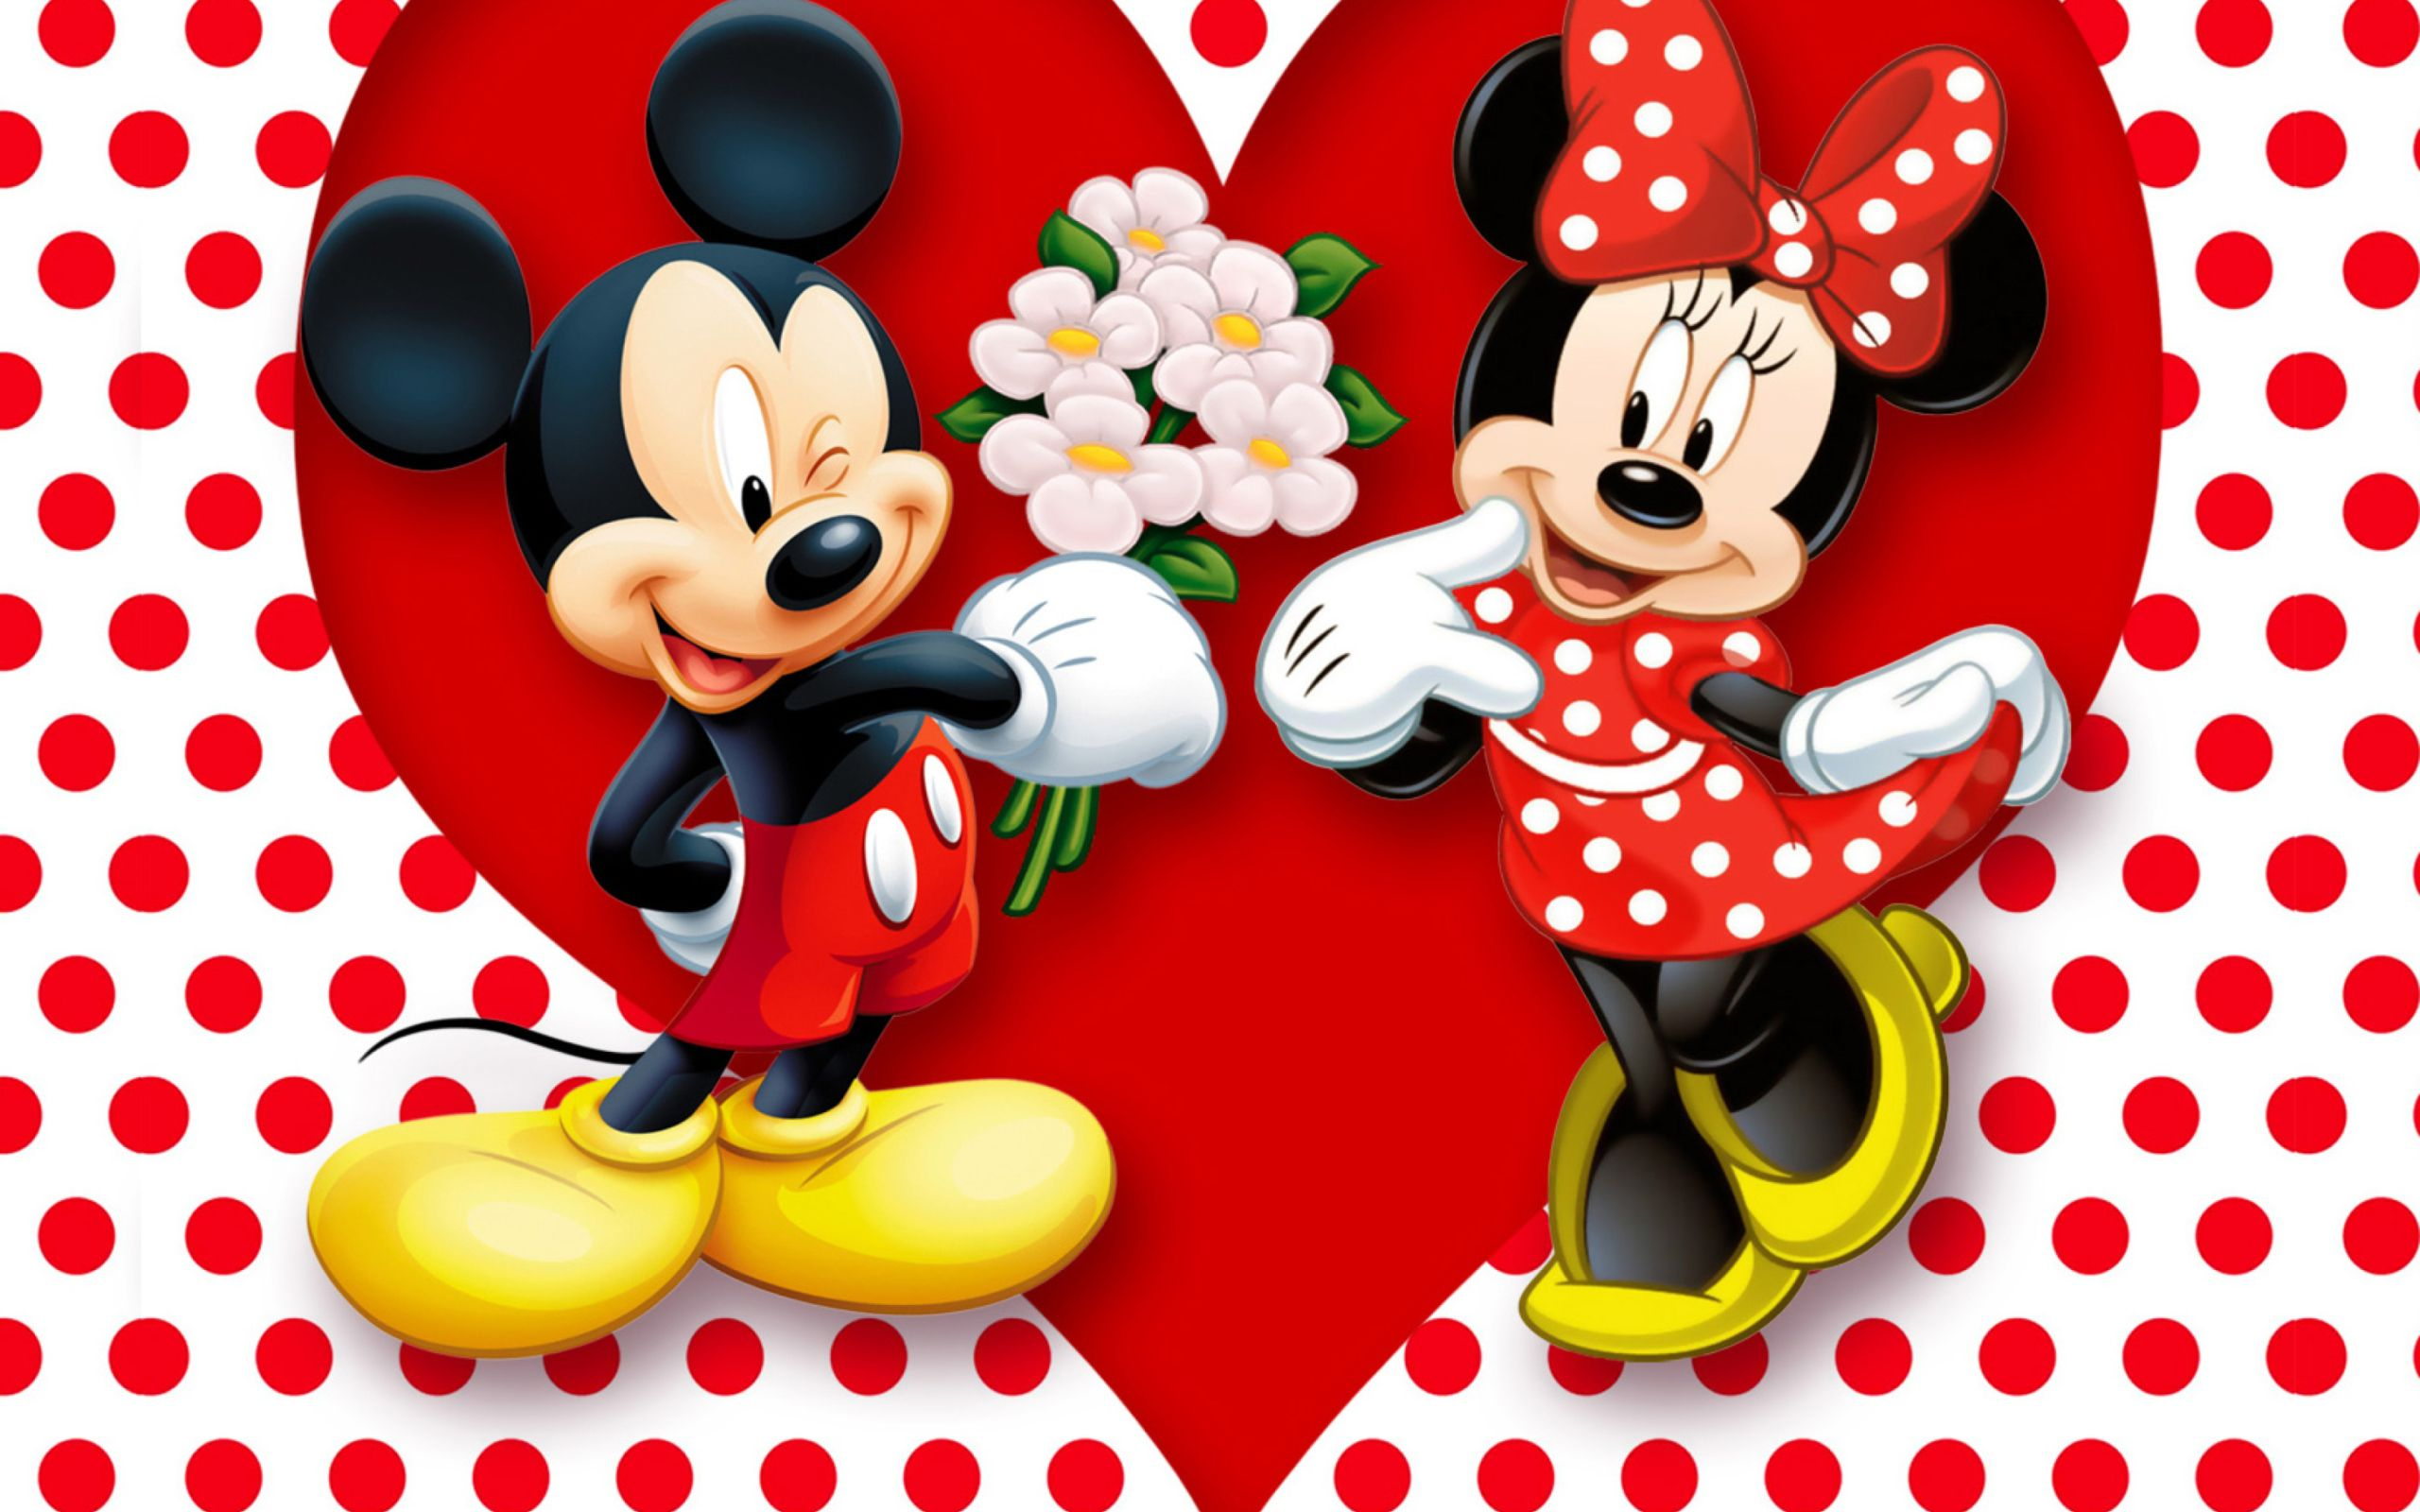 Mickey And Minnie Mouse Wallpaper High Quality Resolution 5jxa 2560x1600 Px 135 MB Anime Baby Gangster